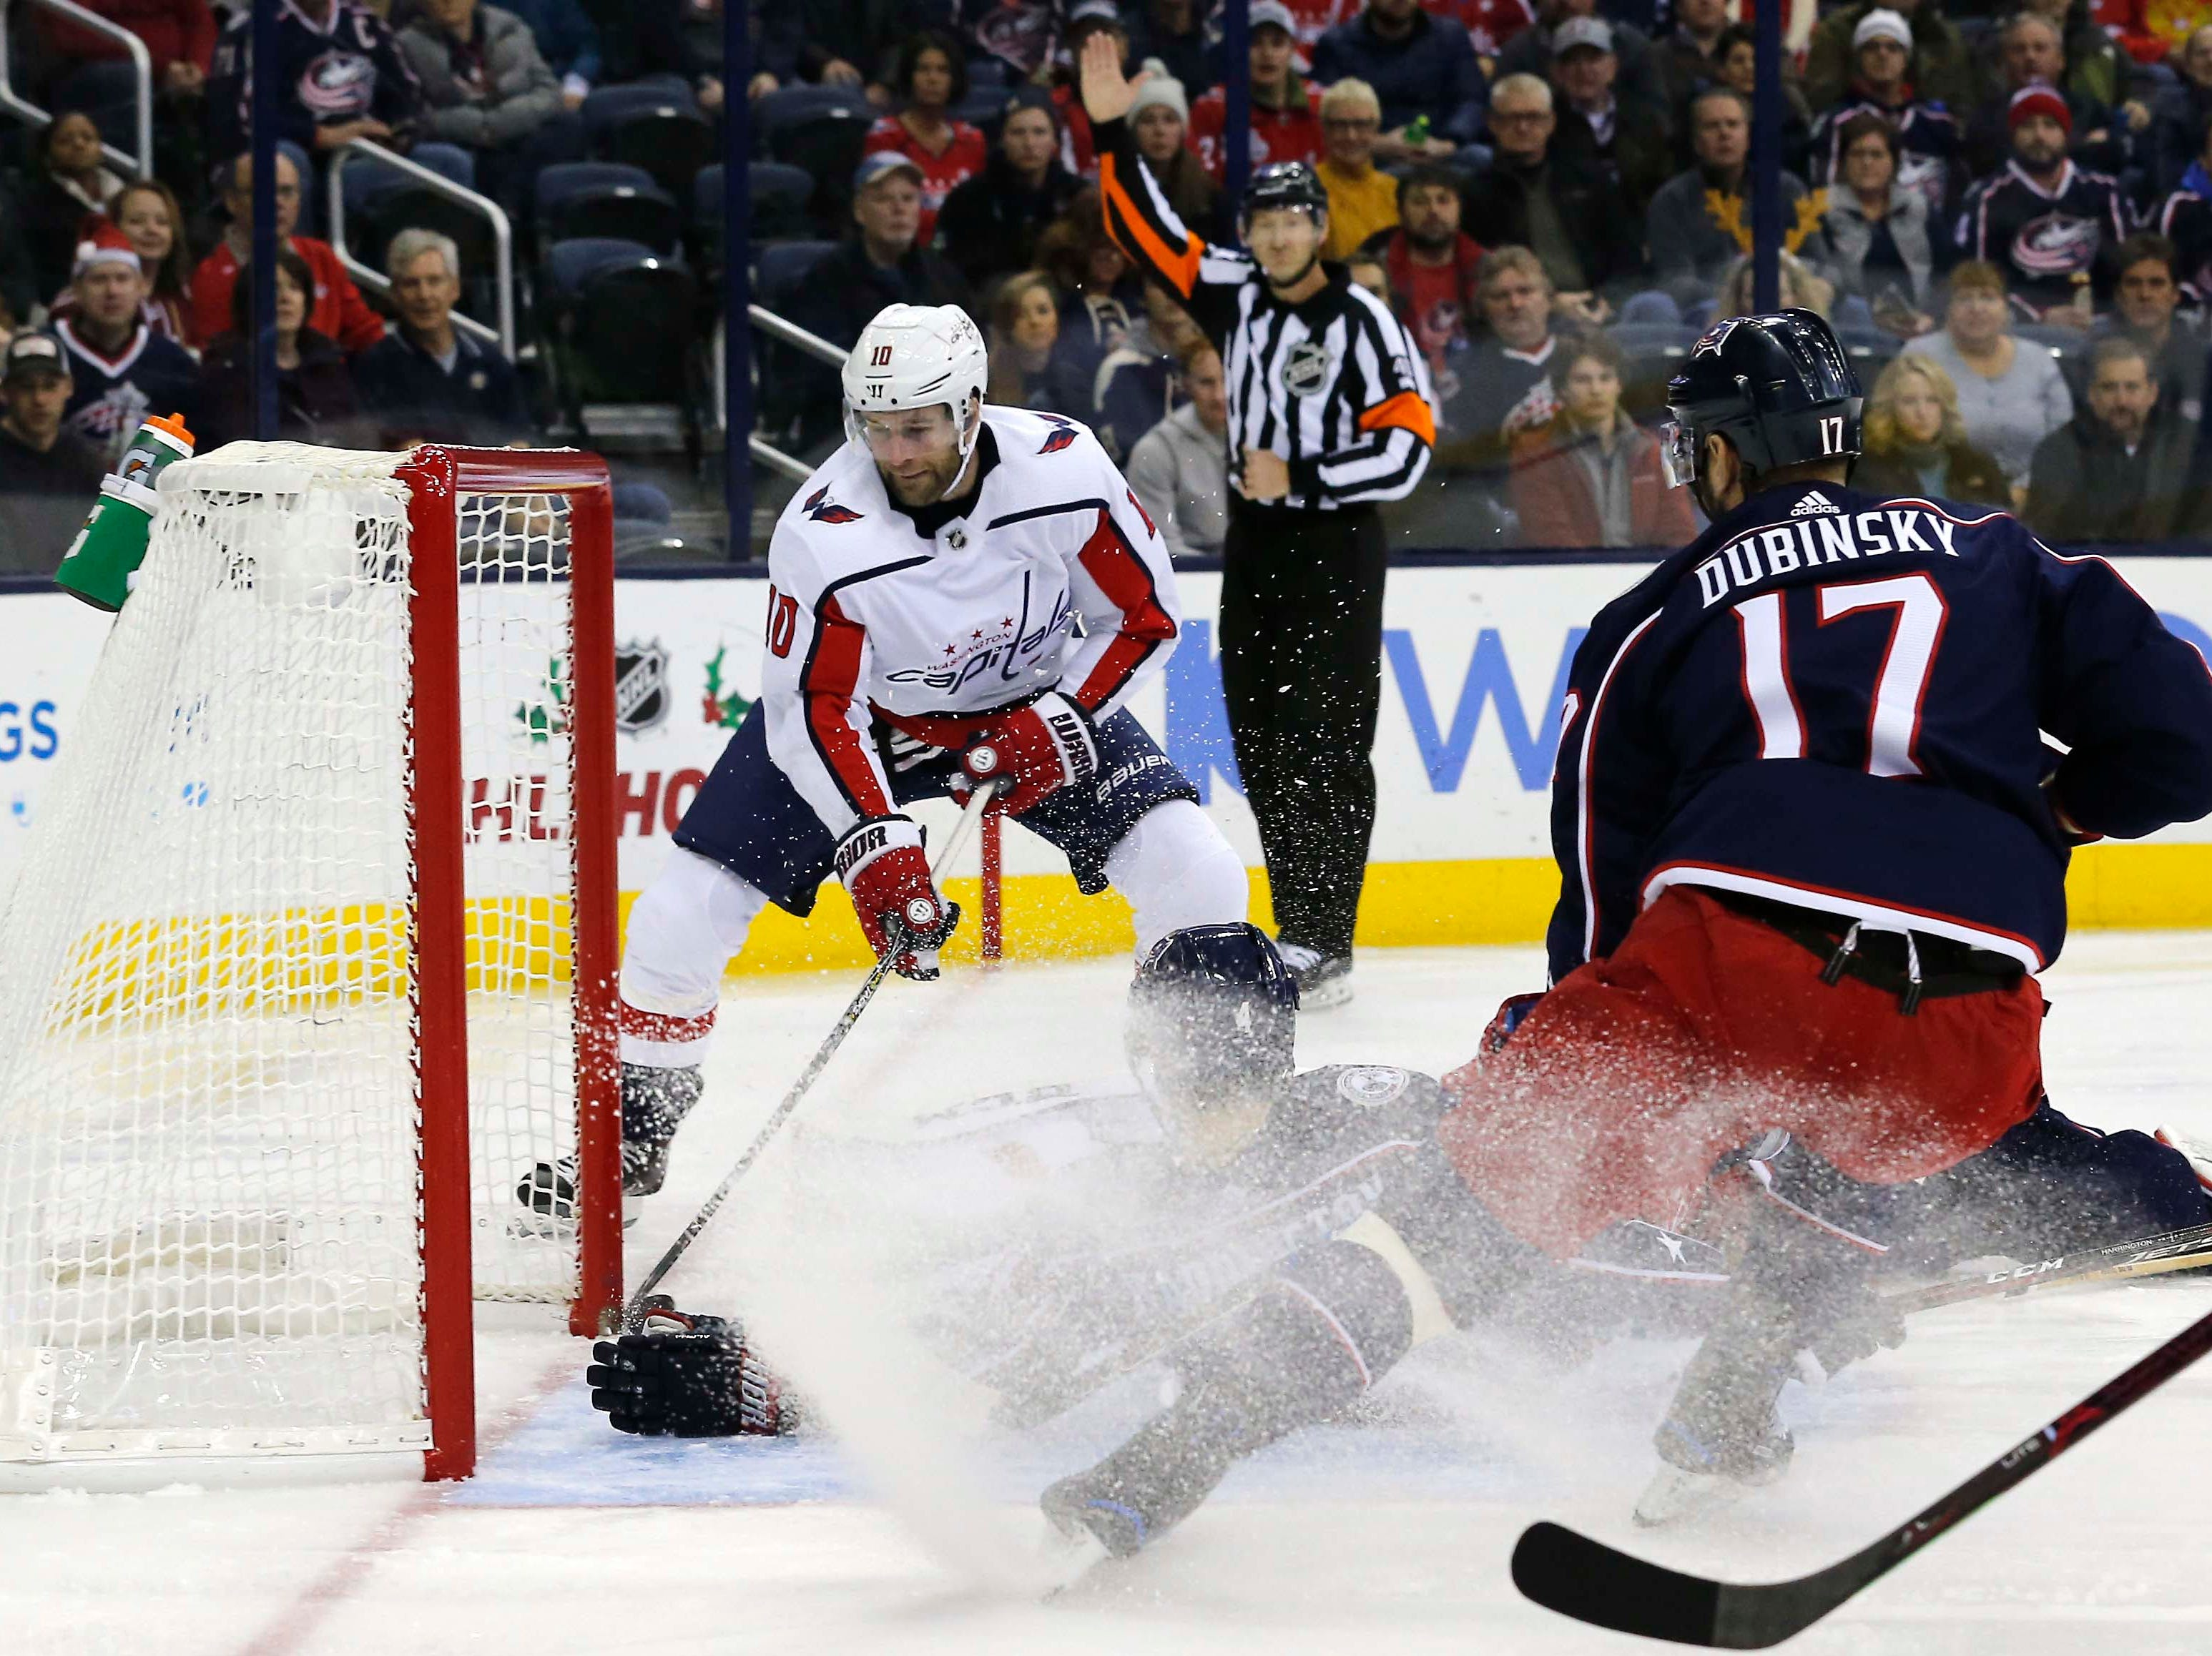 Dec. 8: Washington Capitals right wing Brett Connolly (10) slides the puck past Columbus Blue Jackets goalie Sergei Bobrovsky (72) for a goal during the first period at Nationwide Arena.